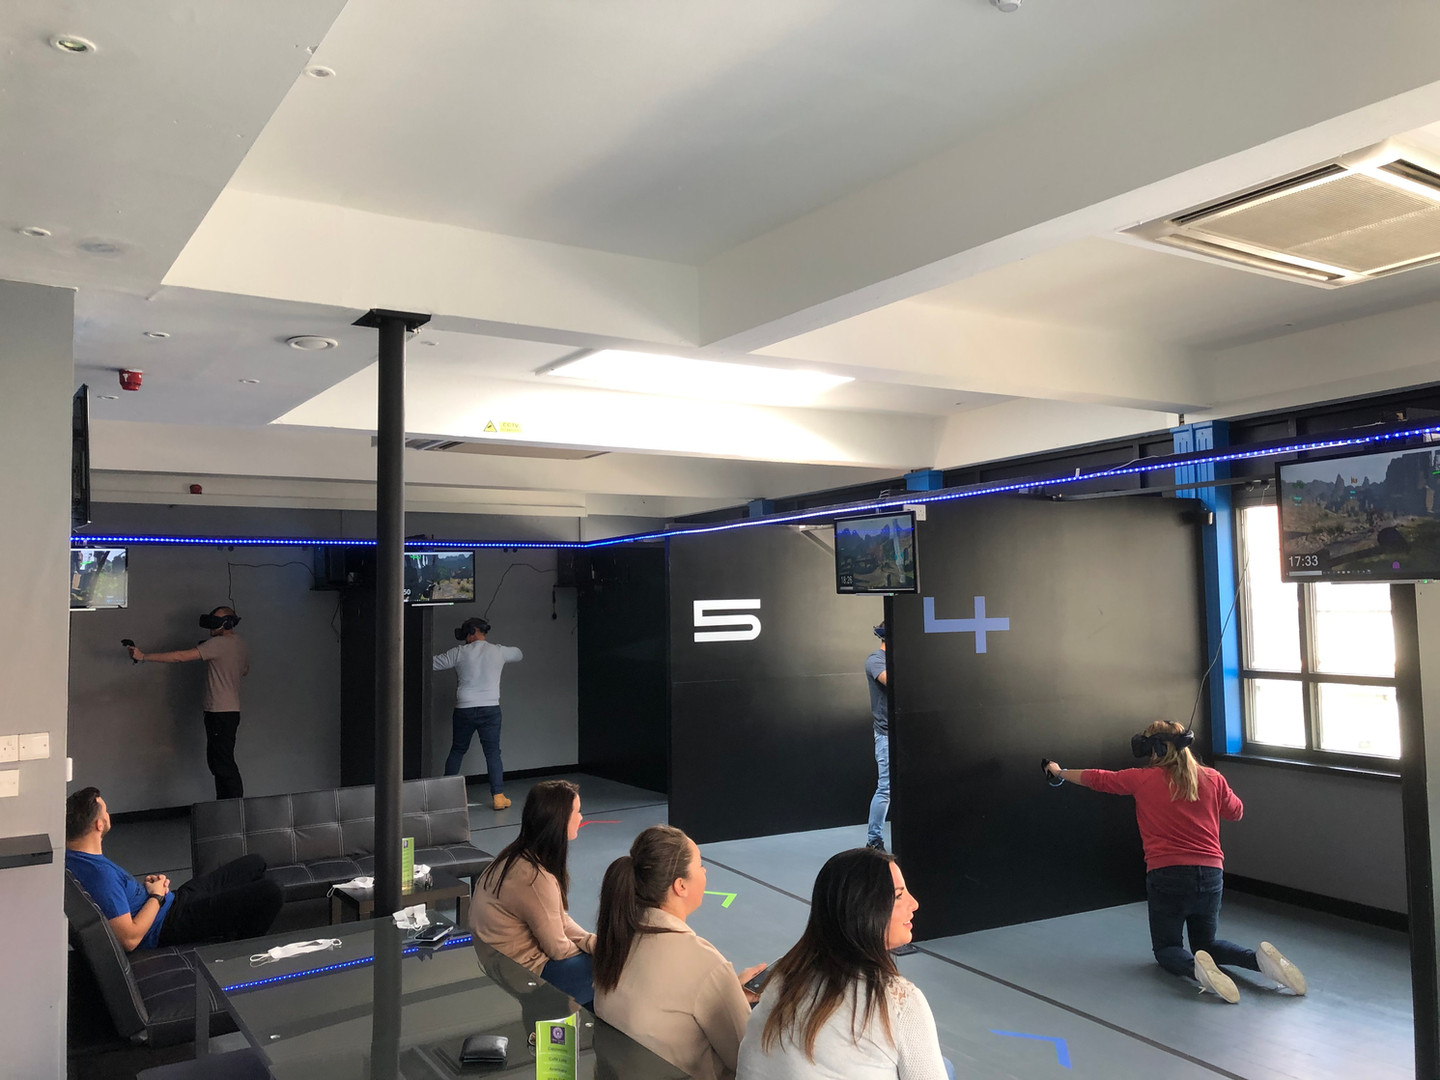 VR arenas